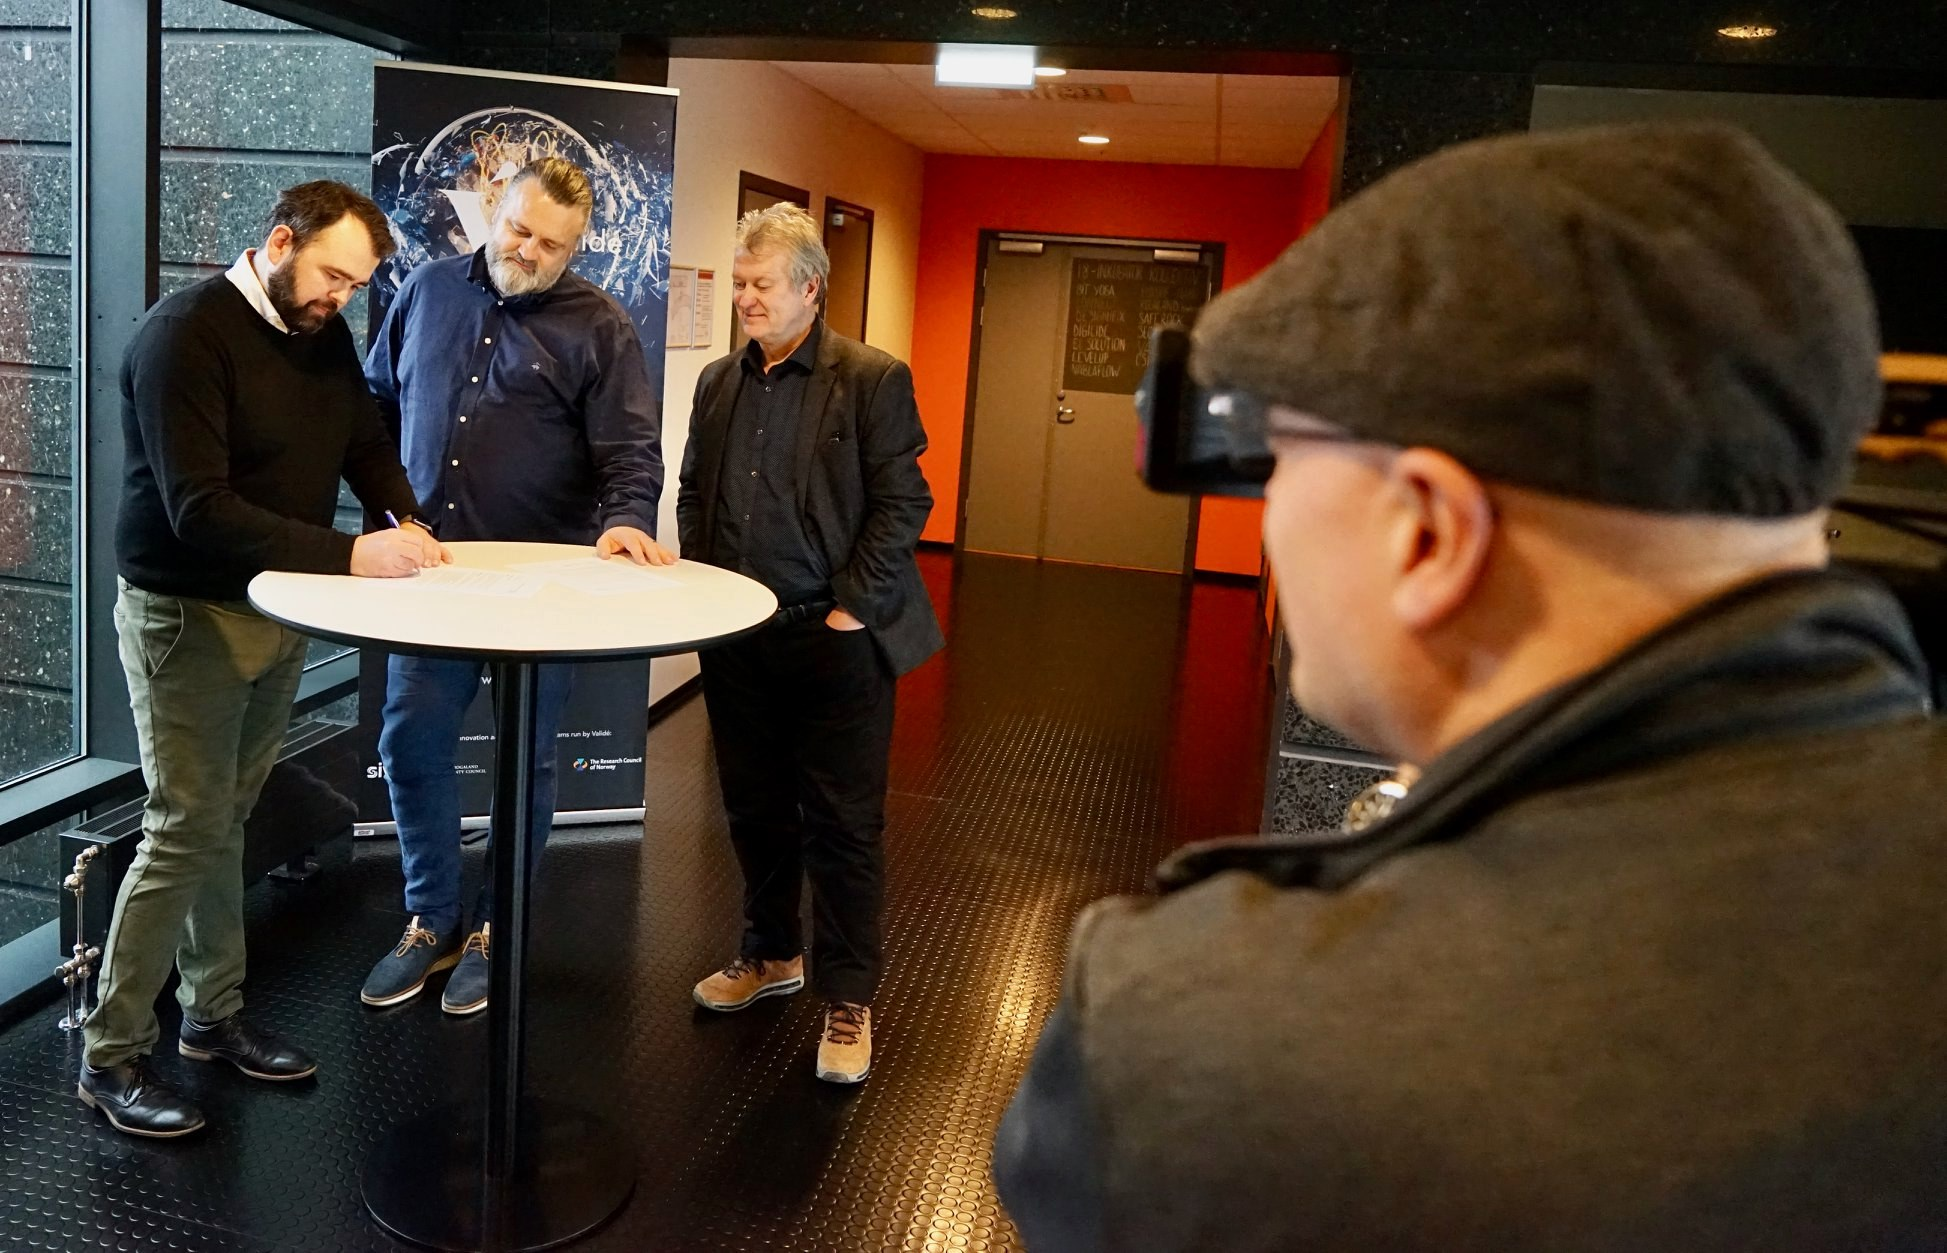 Co-founders signing an investment deal with Valide Haugesund